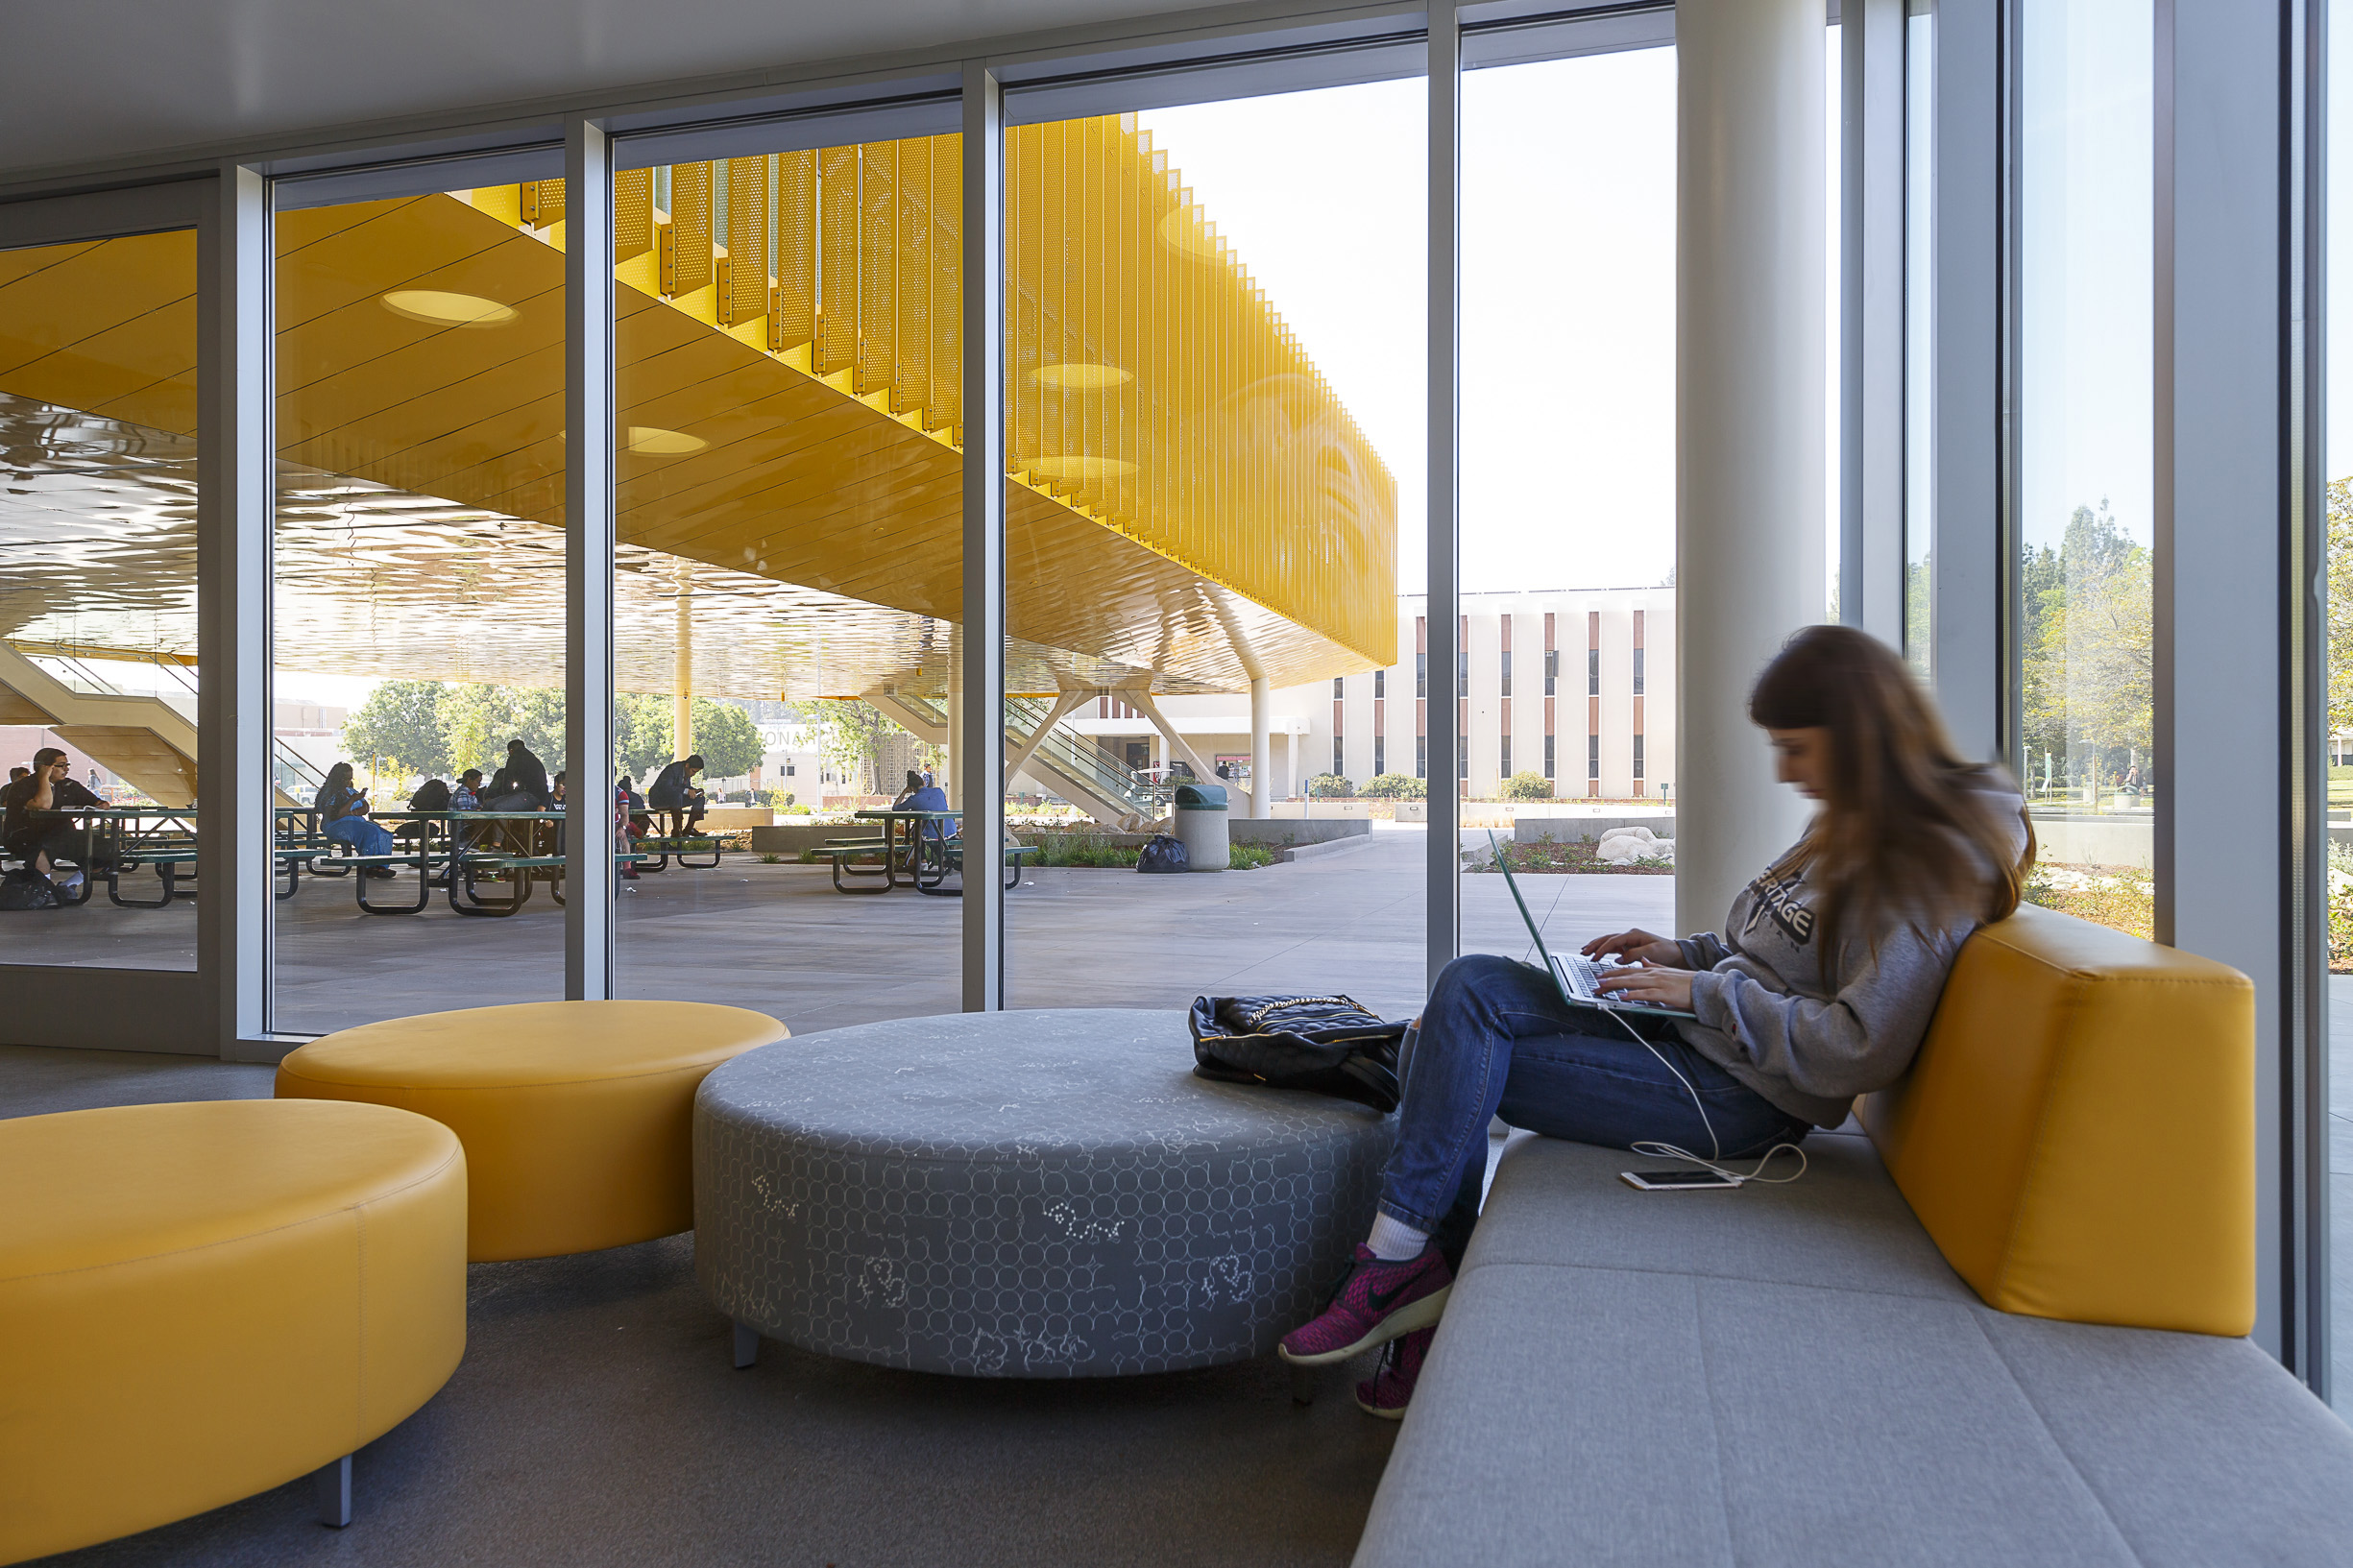 Los angeles valley college completes new student center - Interior design colleges in los angeles ...